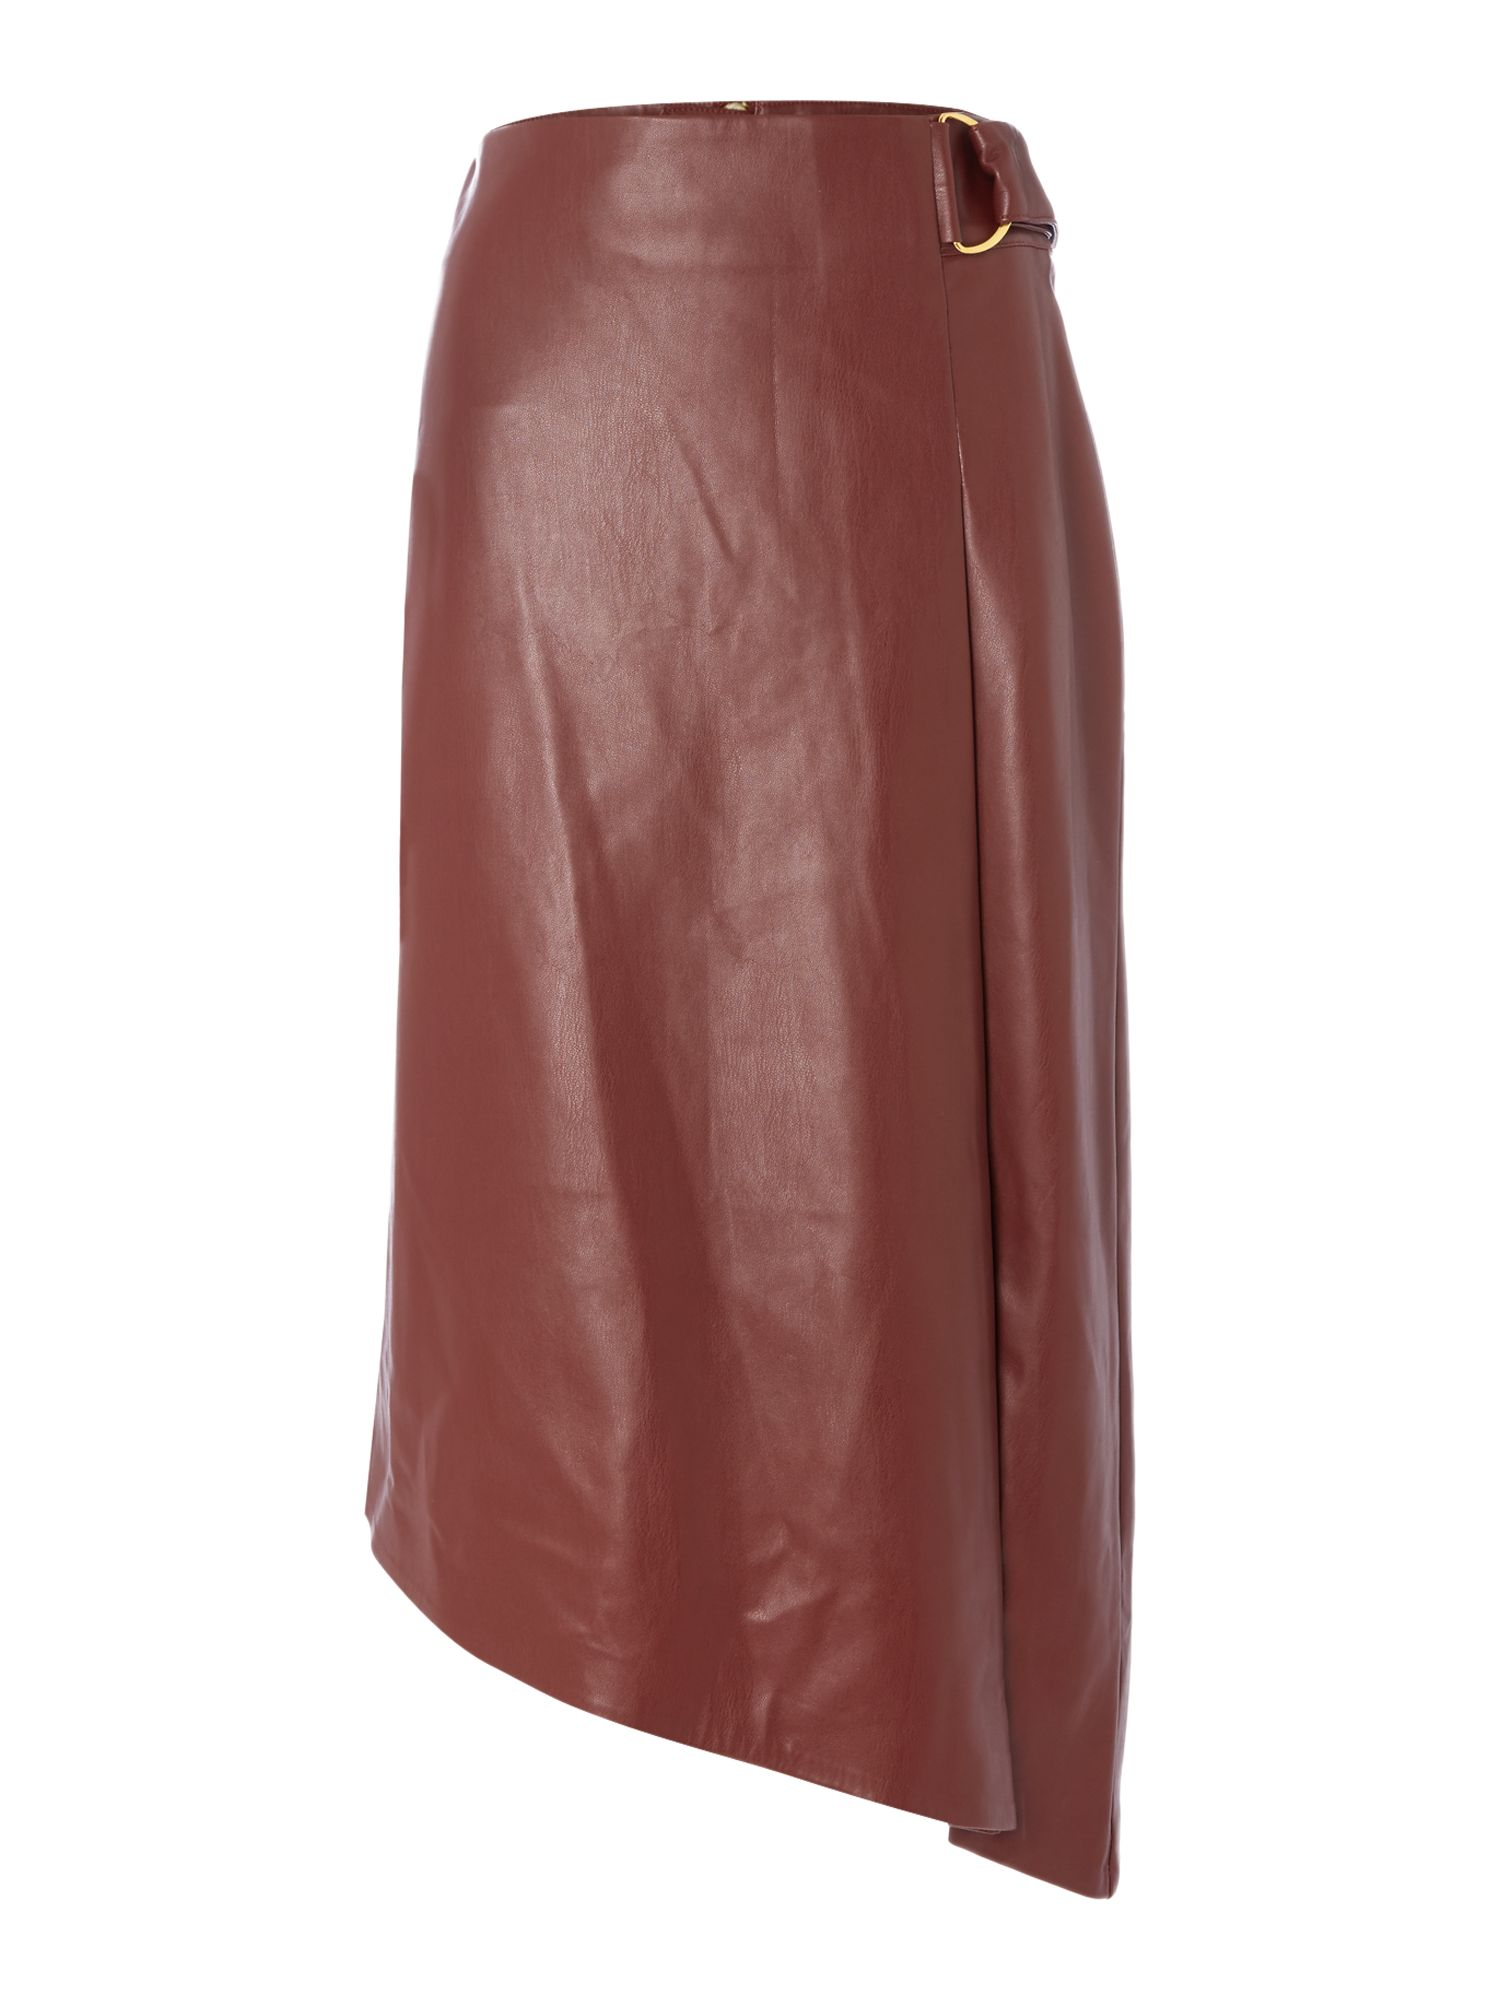 Biba Faux leather assymetric d ring skirt, Red